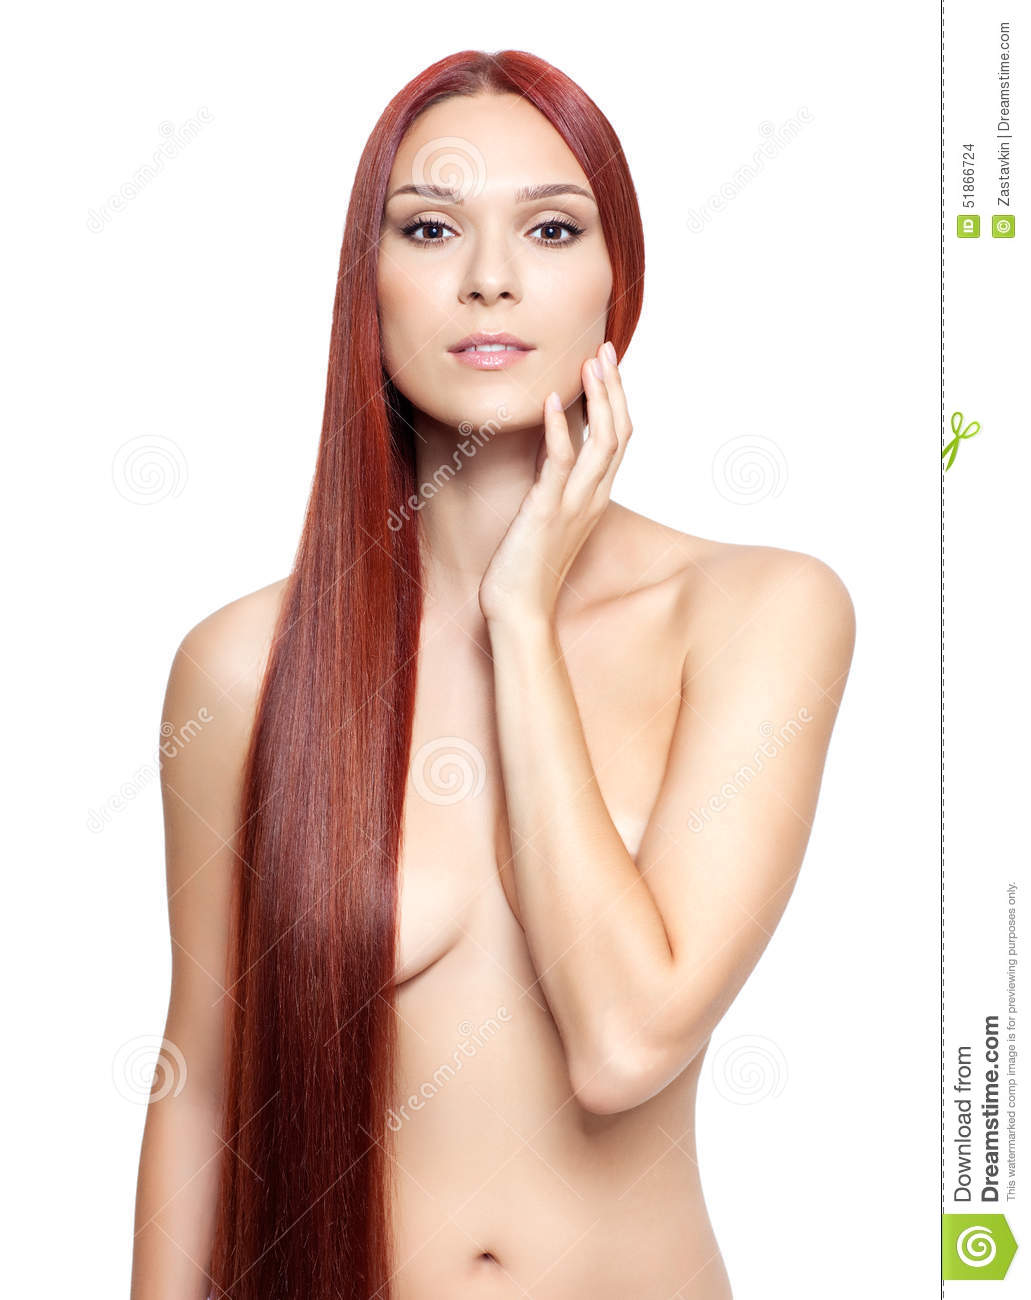 Girls red hair nude with dyed